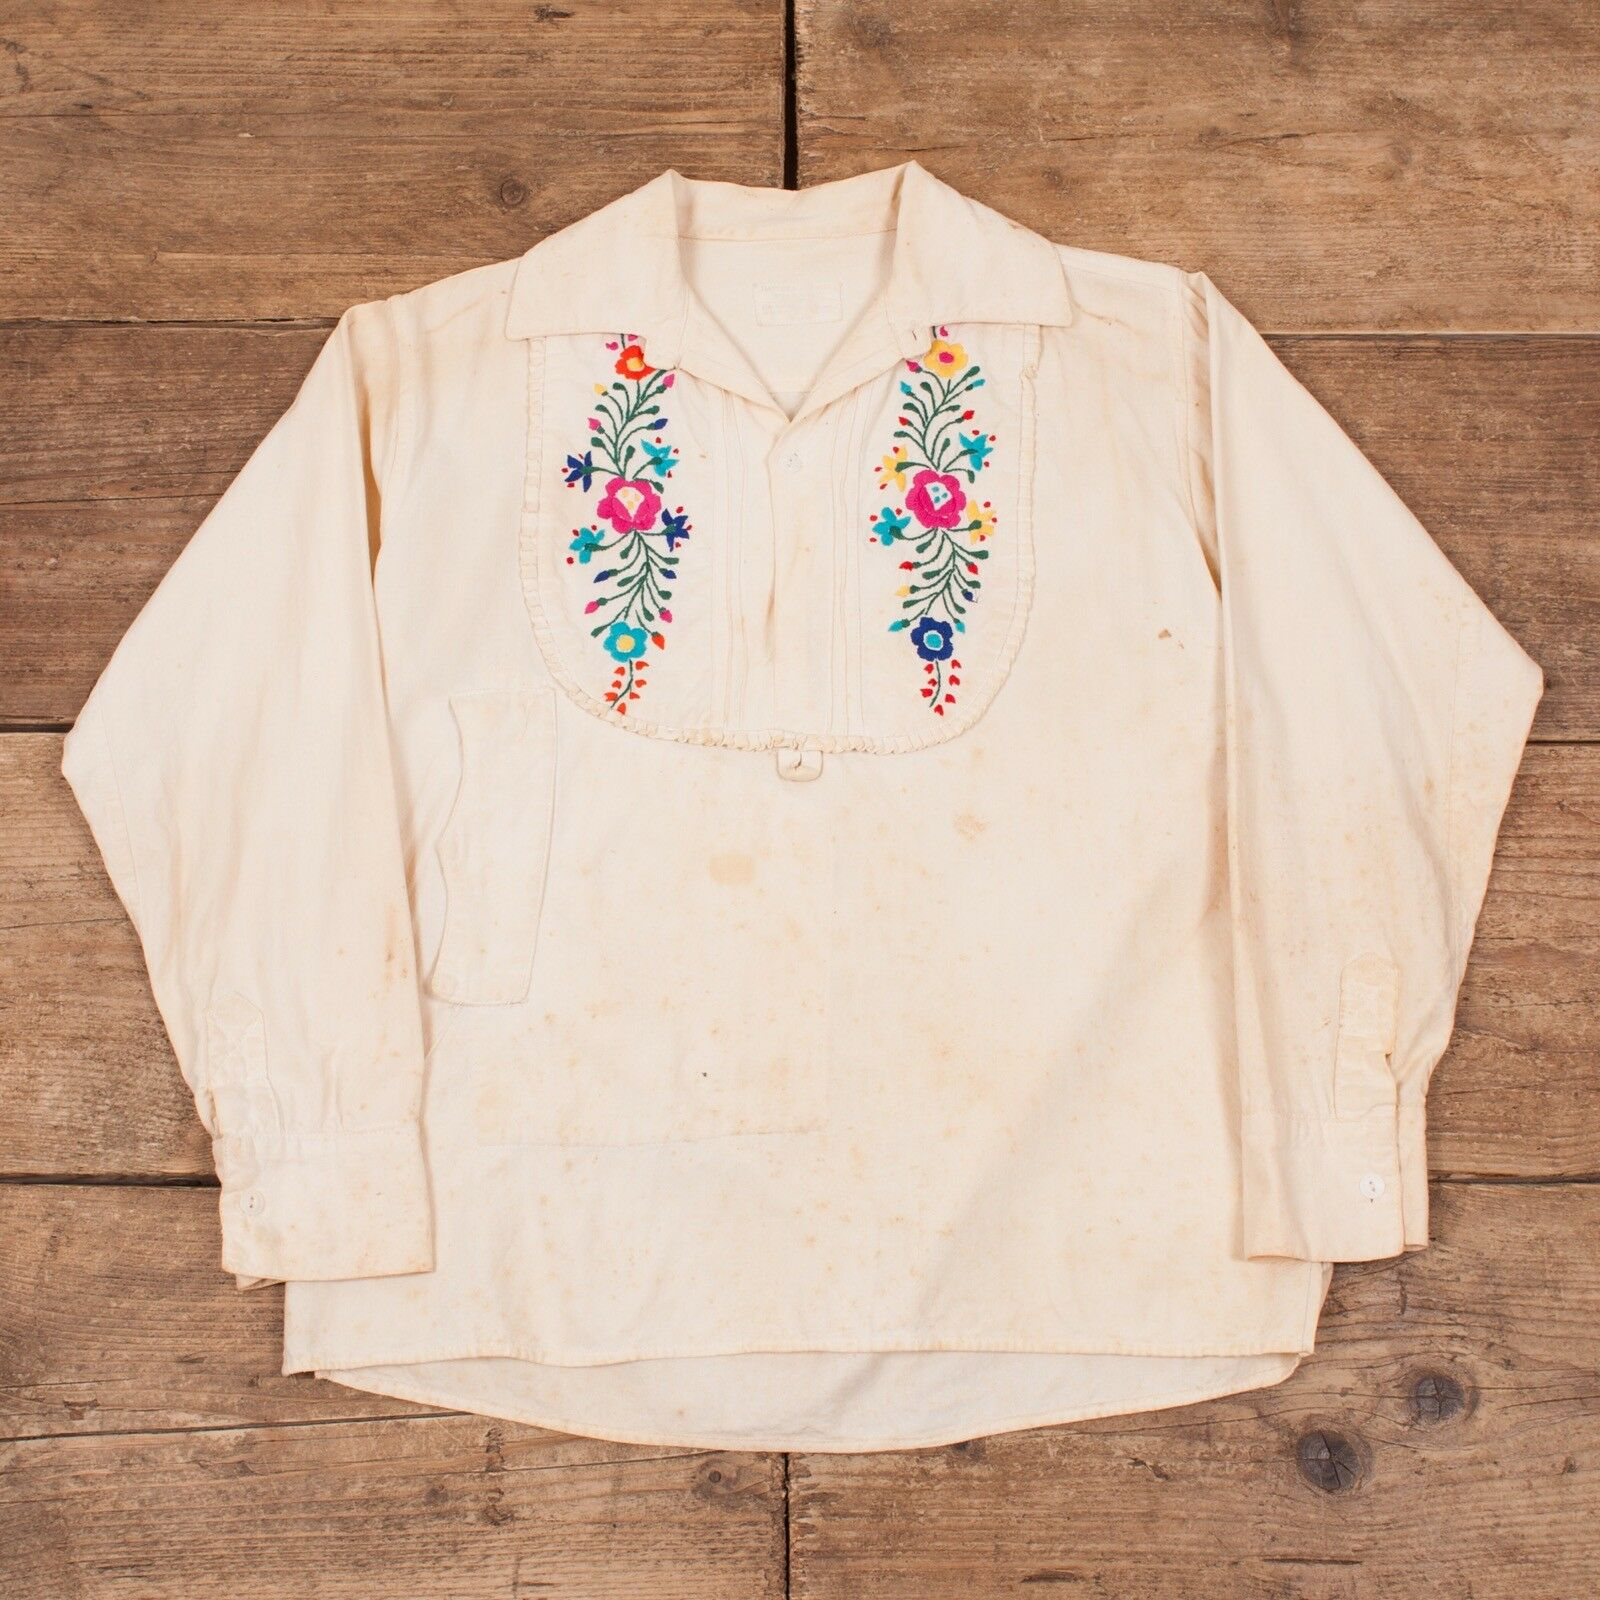 Womens Vintage 1930s Boho Mexican Embroidered Blouse Shirt XR 8601